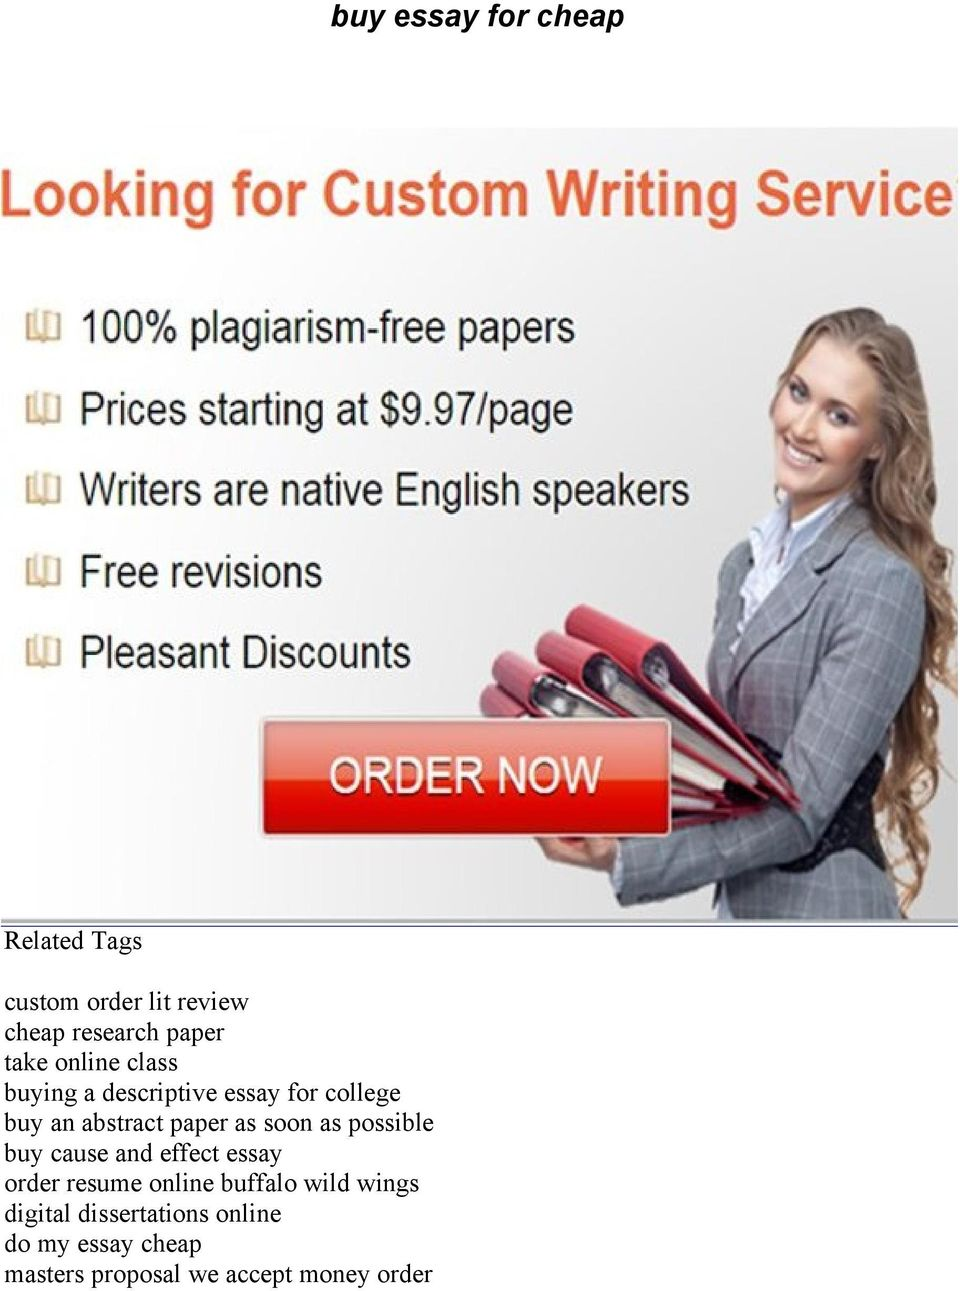 soon as possible buy cause and effect essay order resume online buffalo wild